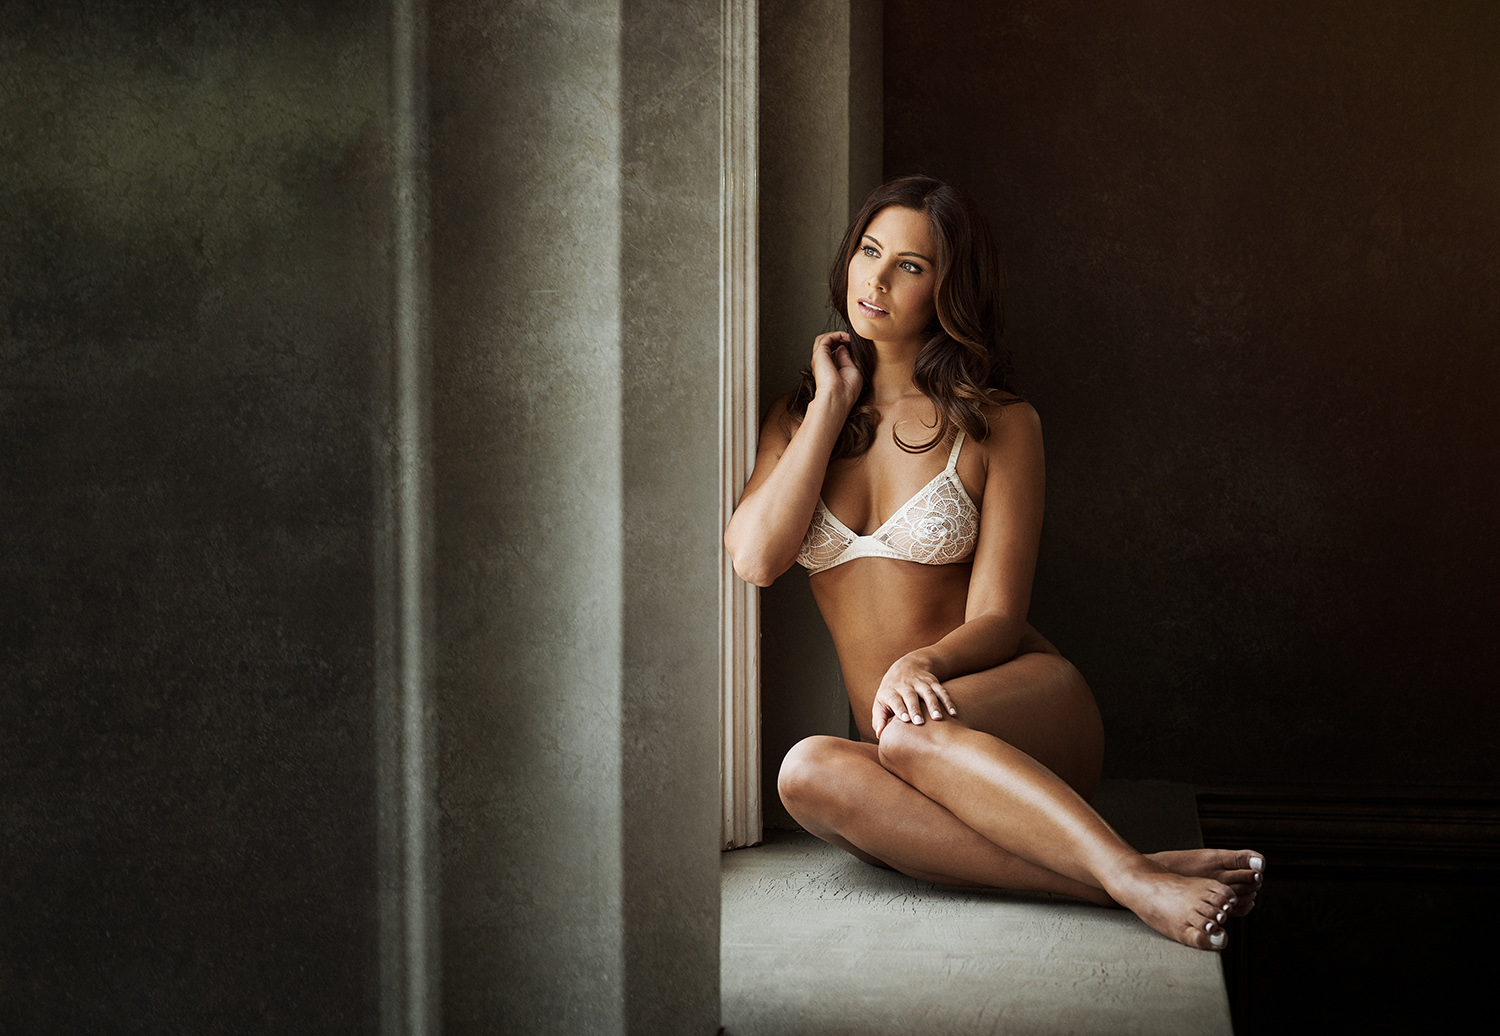 Emma Harris Luxury Lingerie editorial photoshoot by Karl Bratby